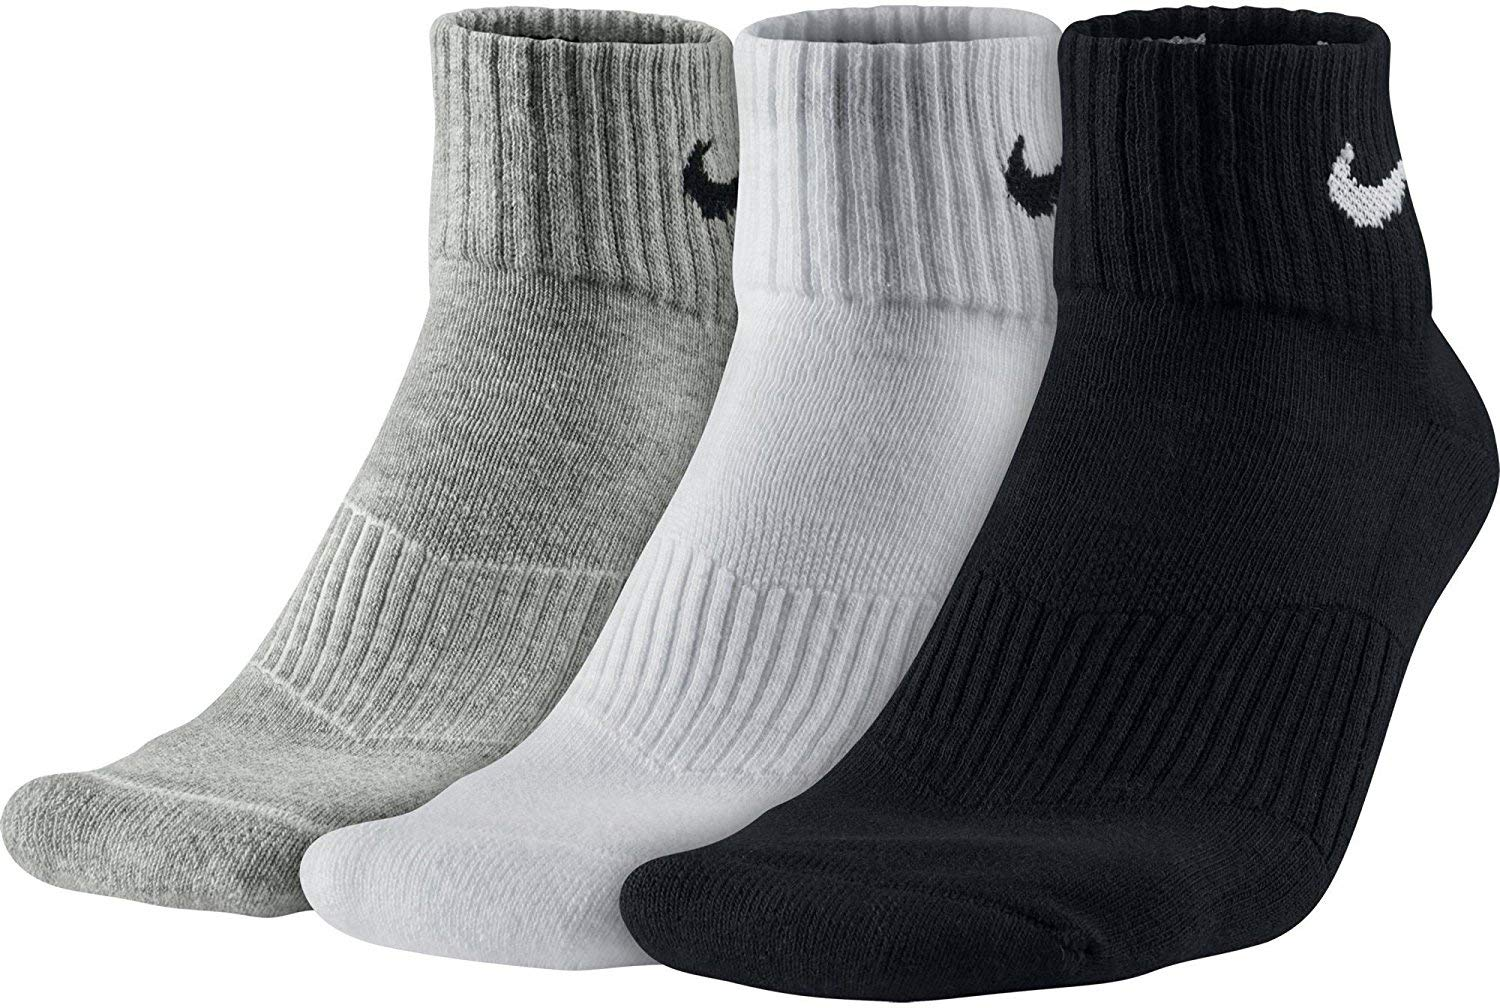 NIKE Unisex Performance Cushion Quarter Training Socks (3 Pairs), Black/White/Grey, Large